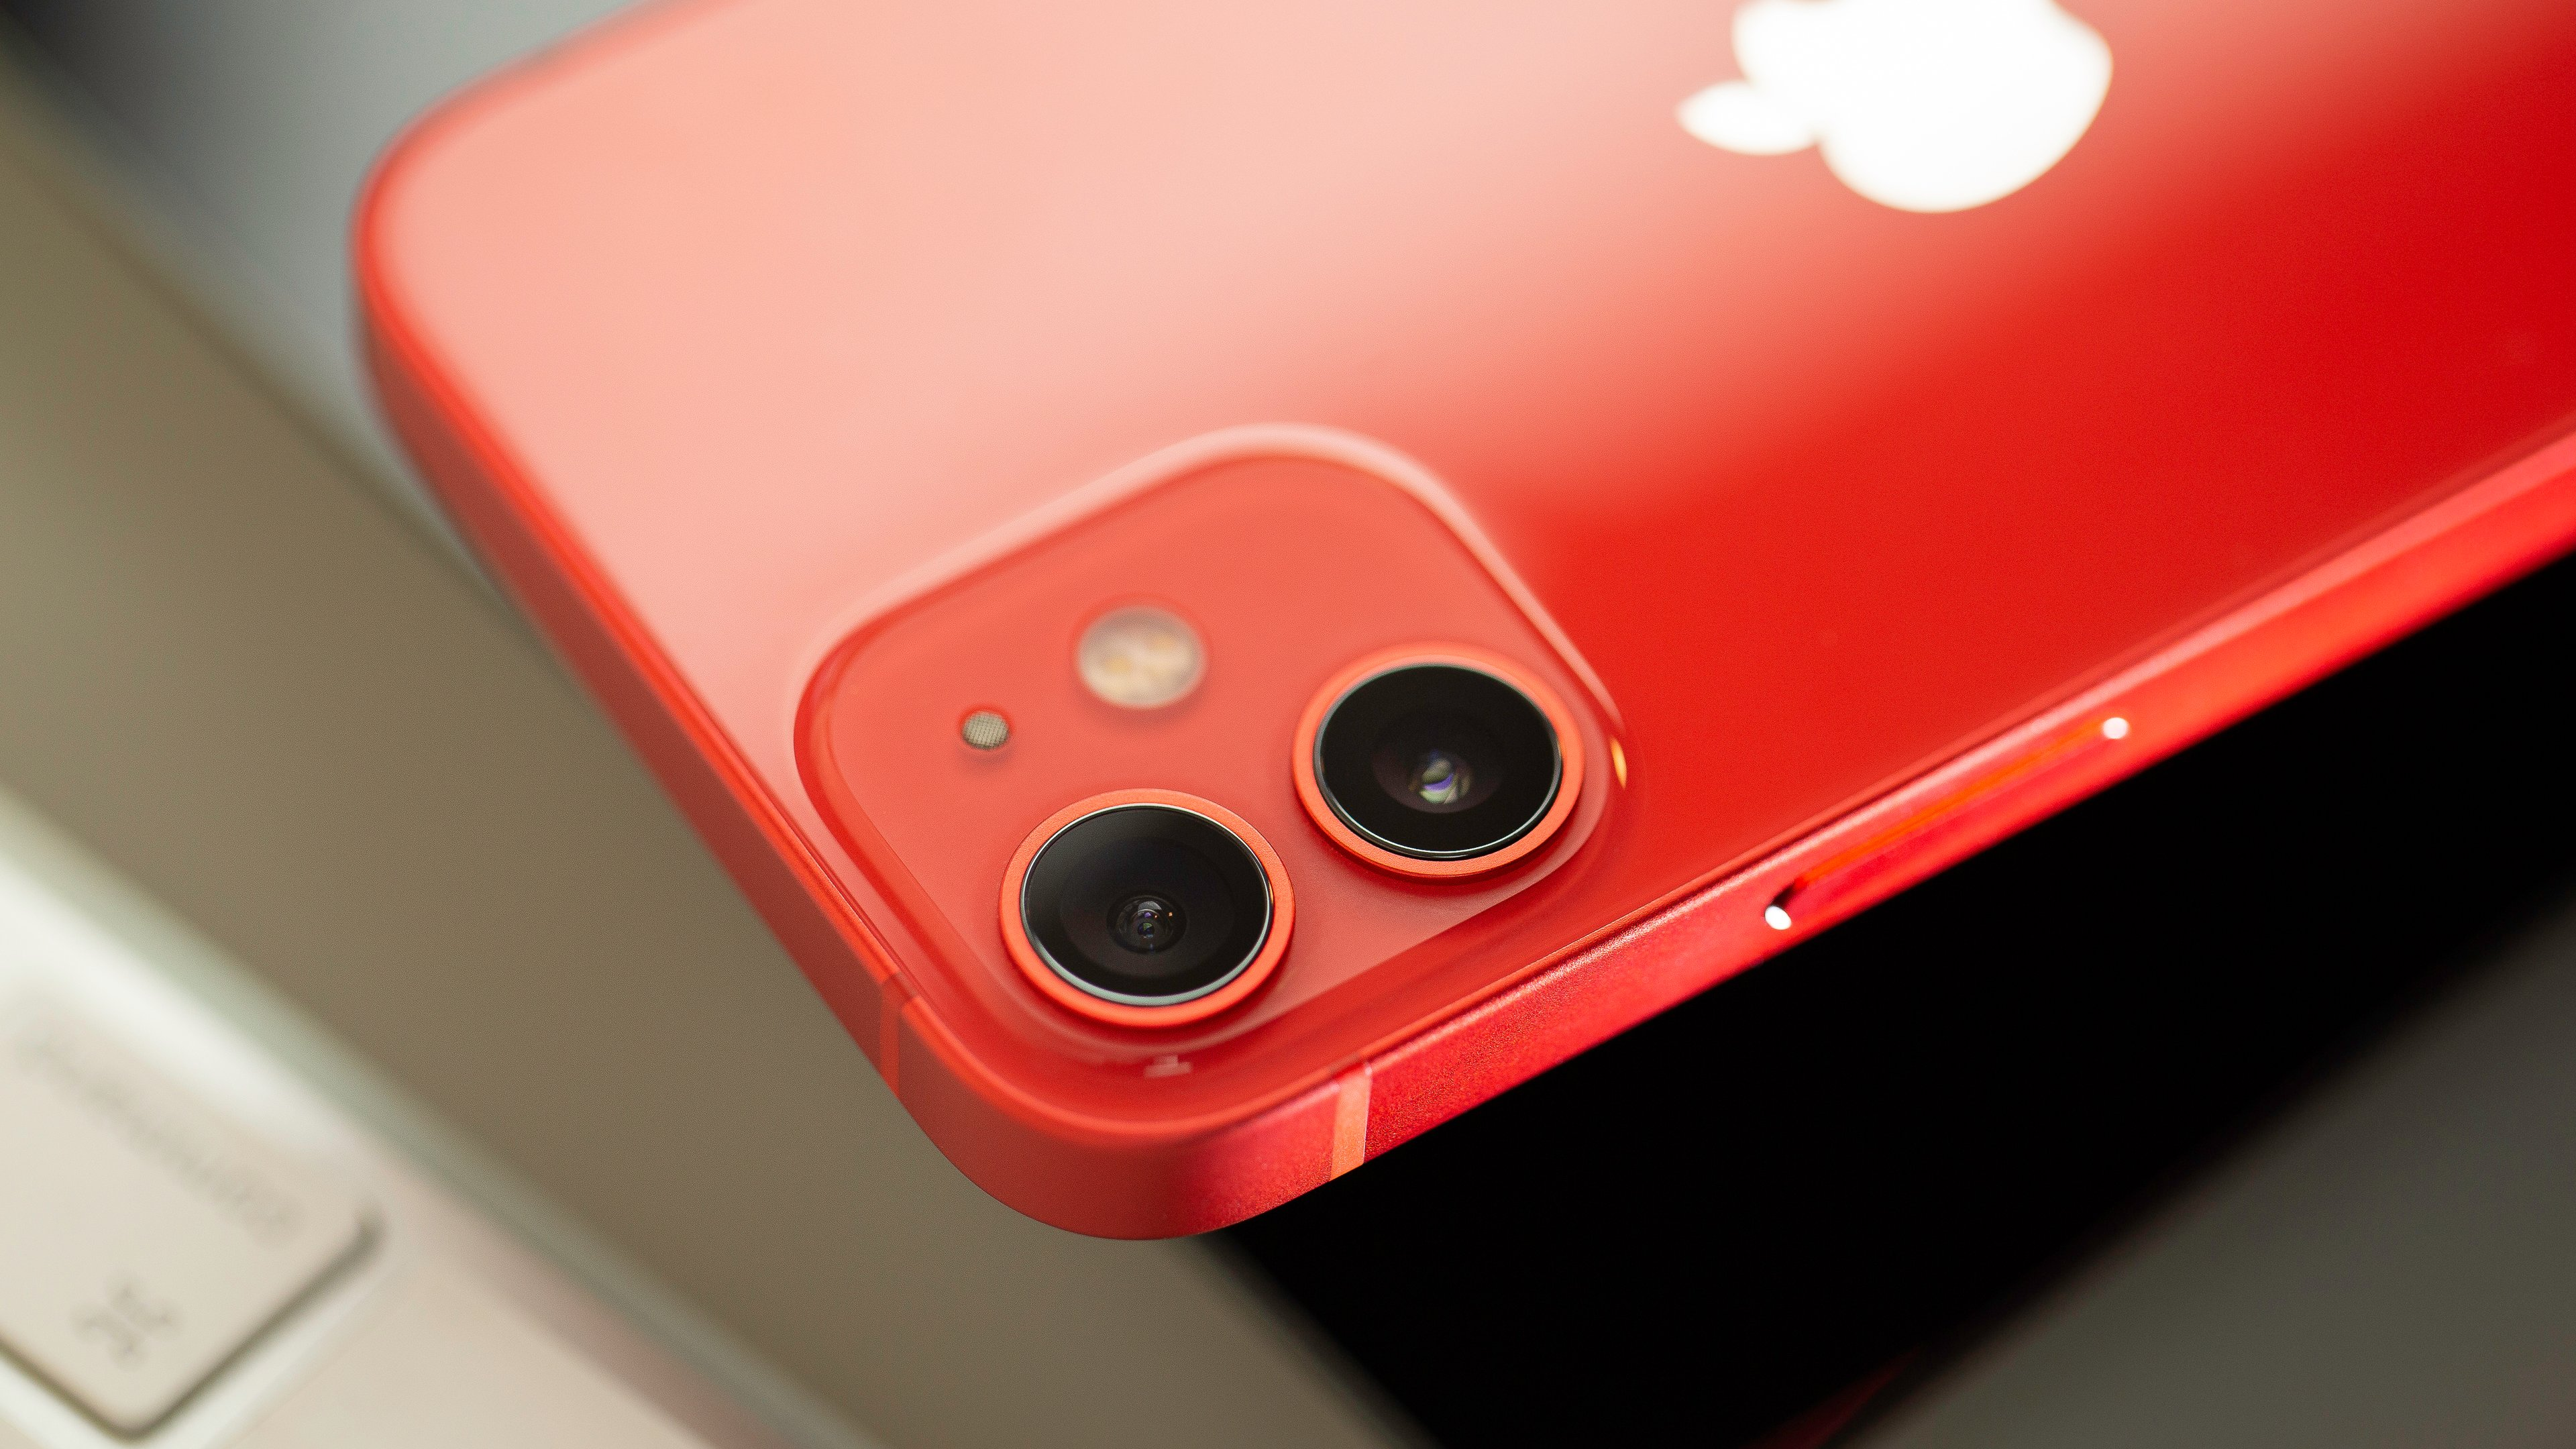 iPhone 13 Pro case spotted: Is Apple working on a mega camera?